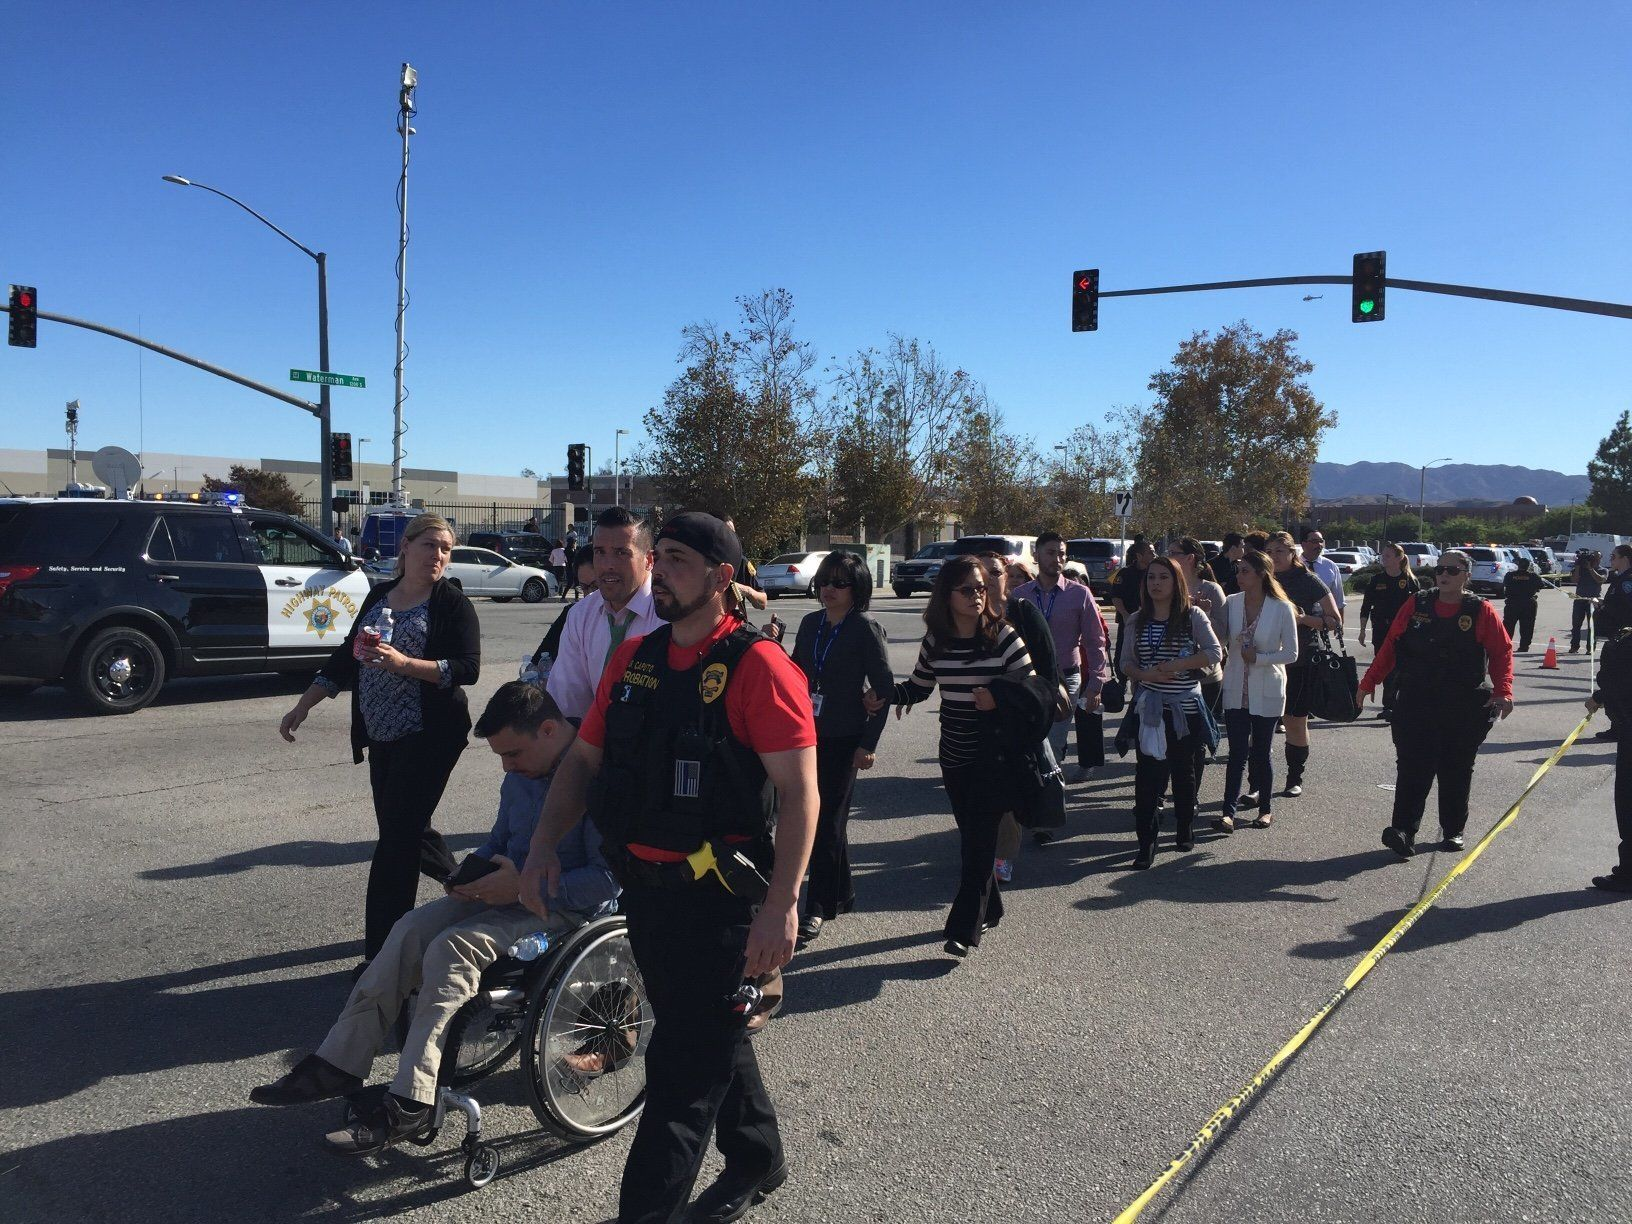 People are evacuated away from the shooting scene in San Bernardino, California, on Wednesday.